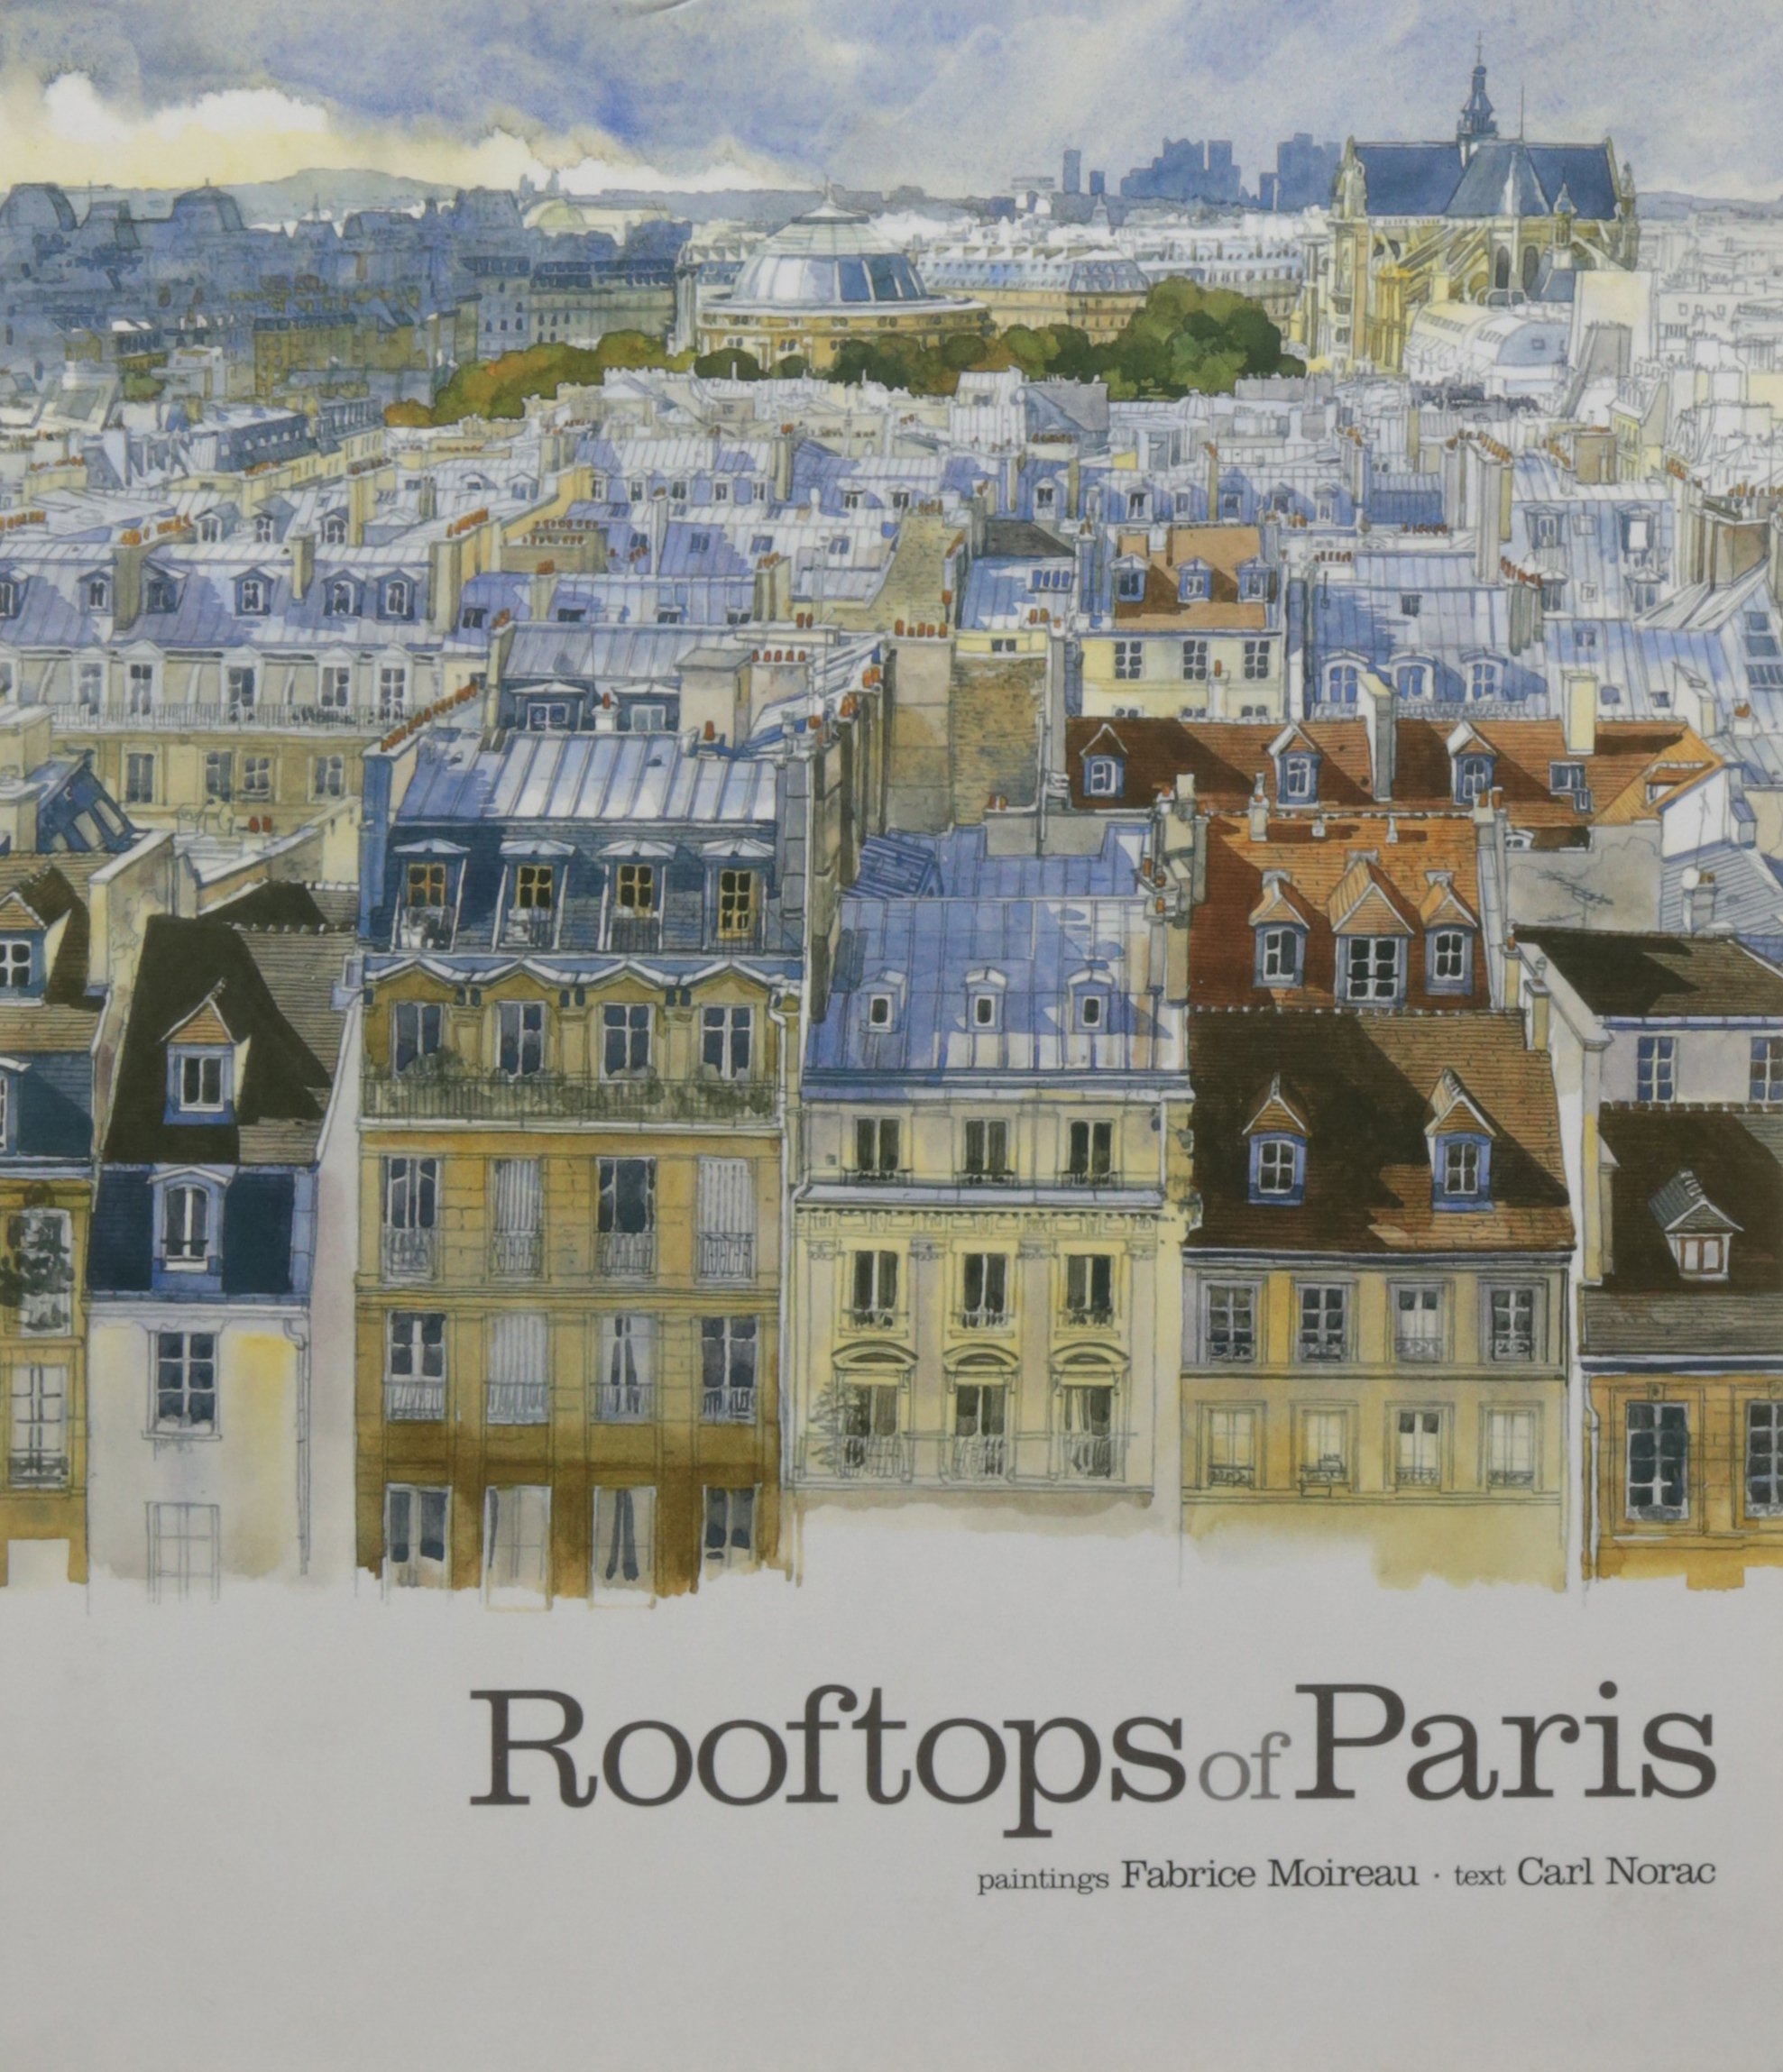 Rooftops of Paris (Sketchbooks)